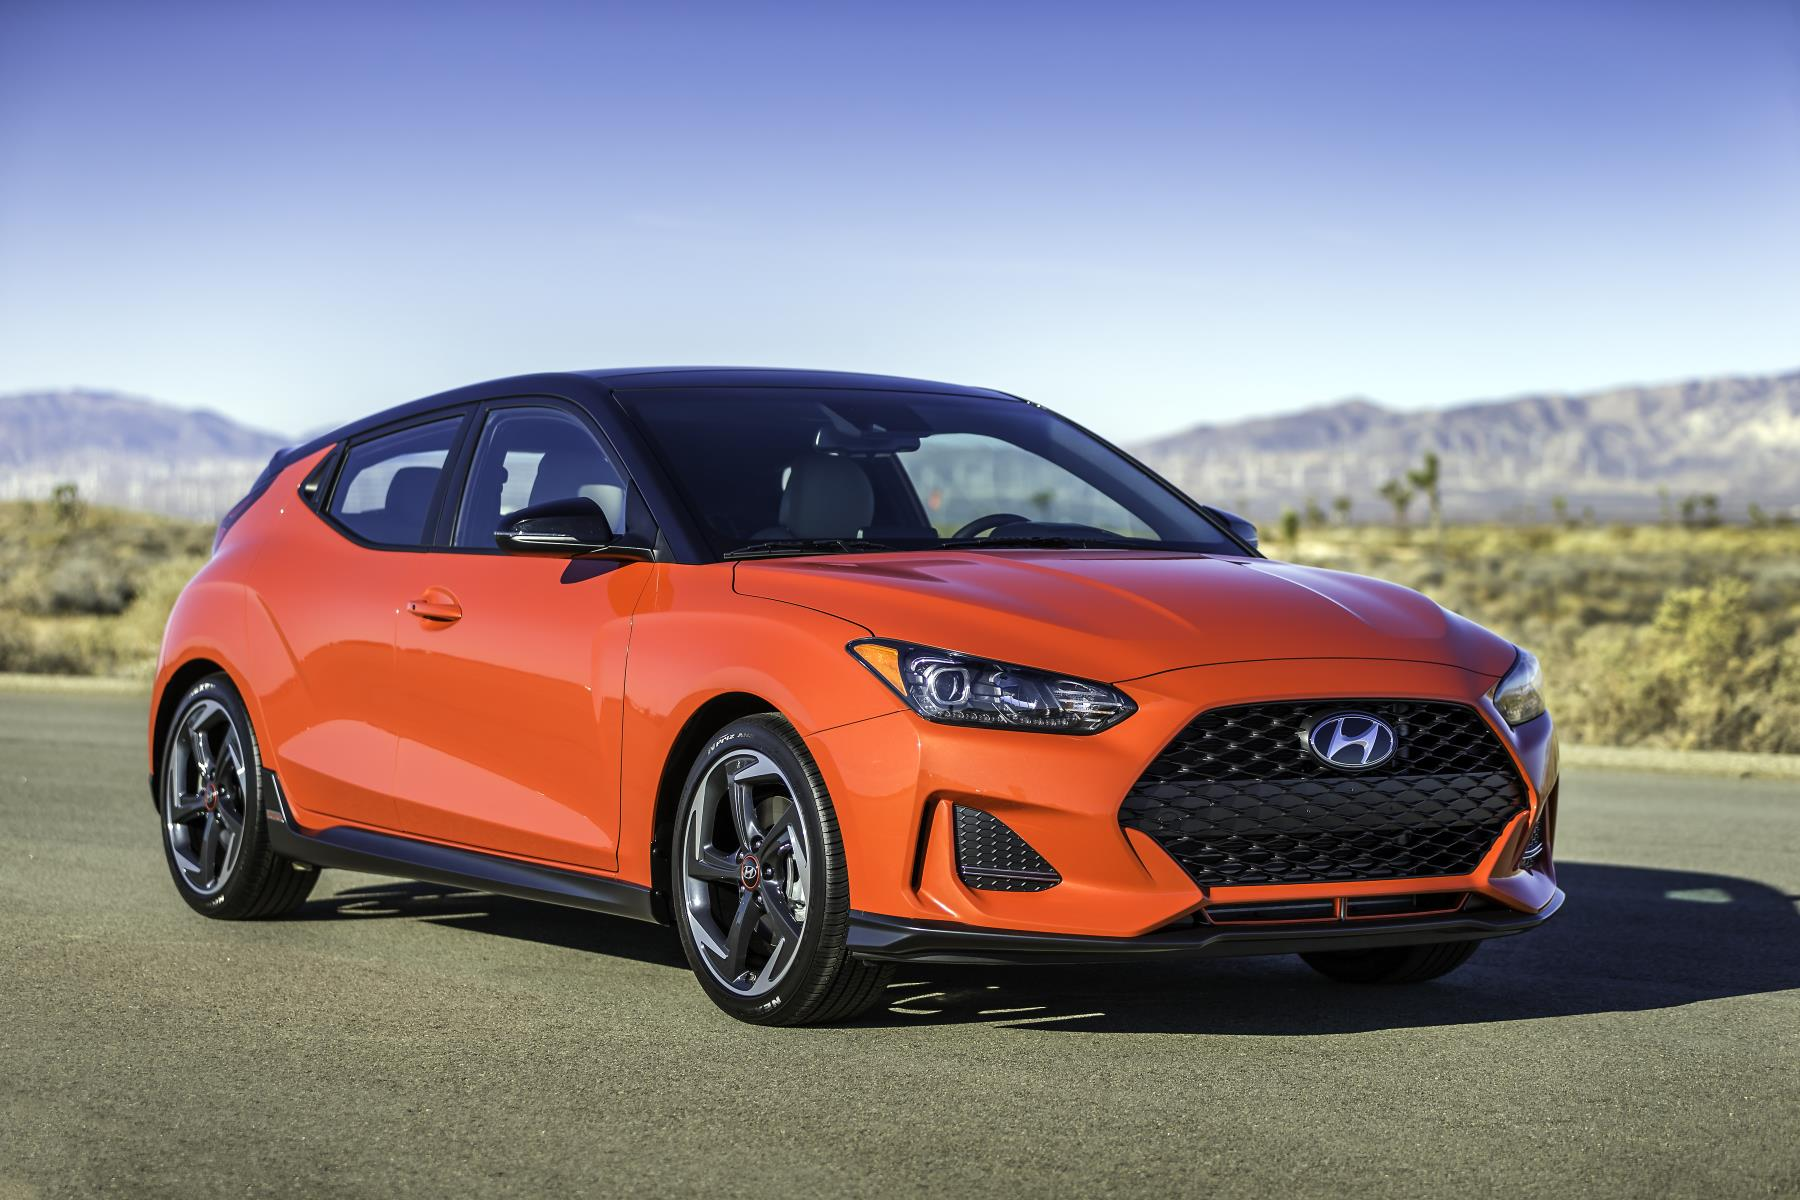 2018 Hyundai Veloster Spec >> ALL-NEW 2019 HYUNDAI VELOSTER AND VELOSTER TURBO - myAutoWorld.com